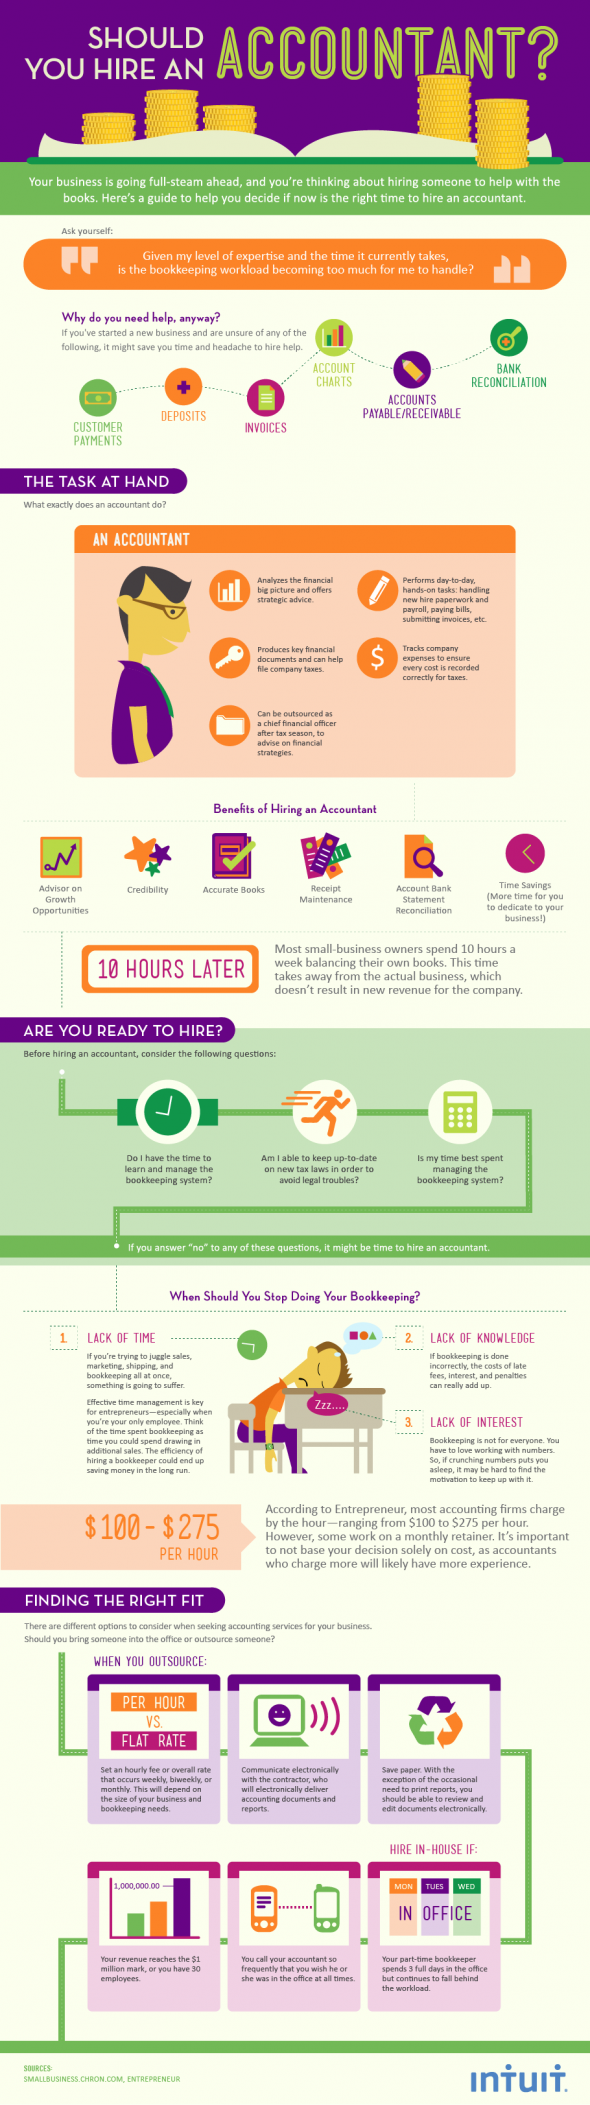 The Benefits of an Accountant for Your Business [INFOGRAPHIC]